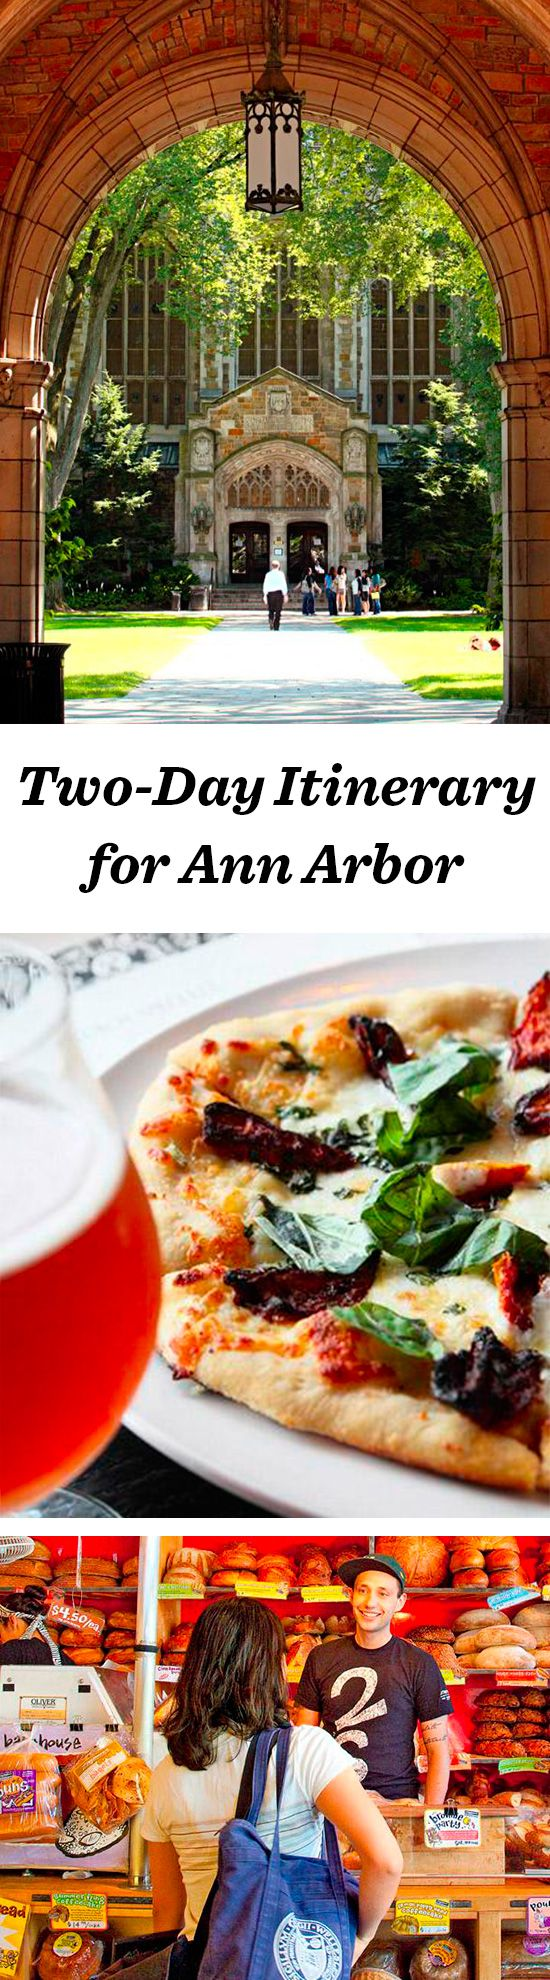 Ann Arbor, the University of Michigan's cool hometown, supports a world tour of great restaurants, shopping and art: http://www.midwestliving.com/travel/michigan/ann-arbor/two-day-getaway-to-ann-arbor/ #annarbor #michigan #travel